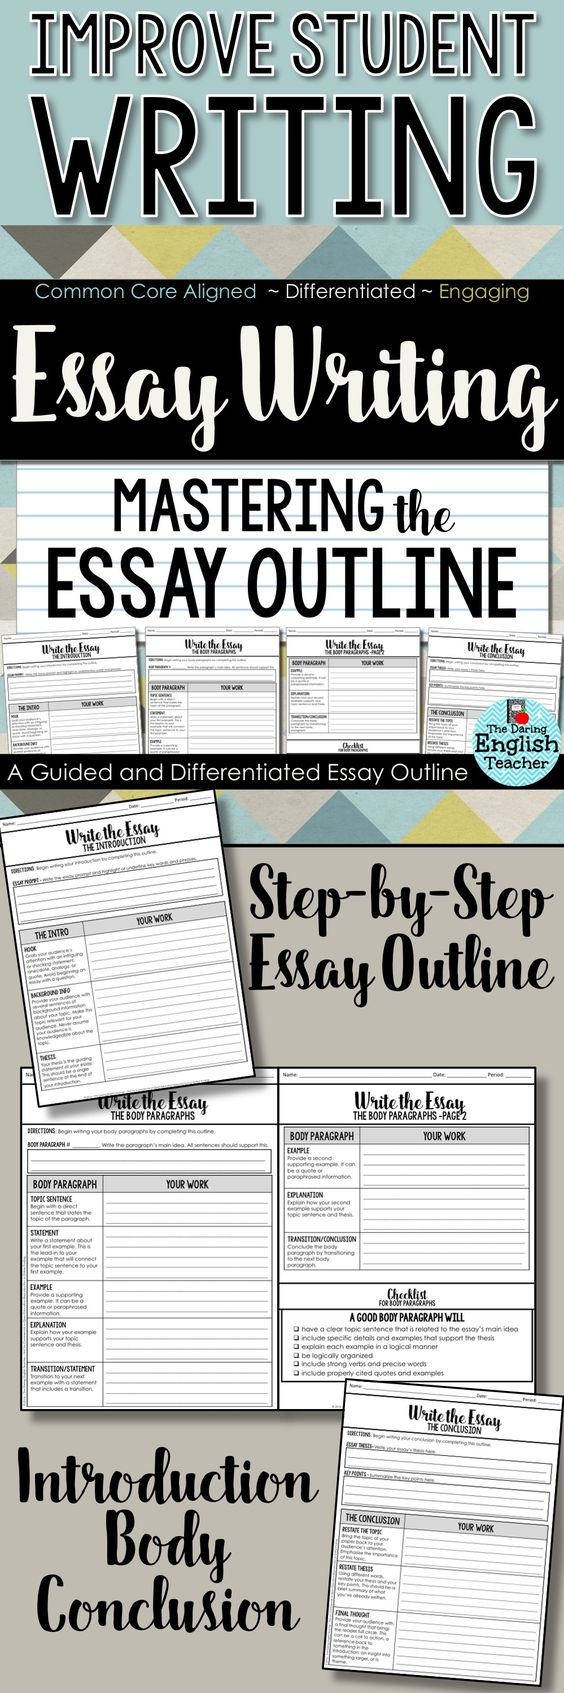 Essay writing instructions